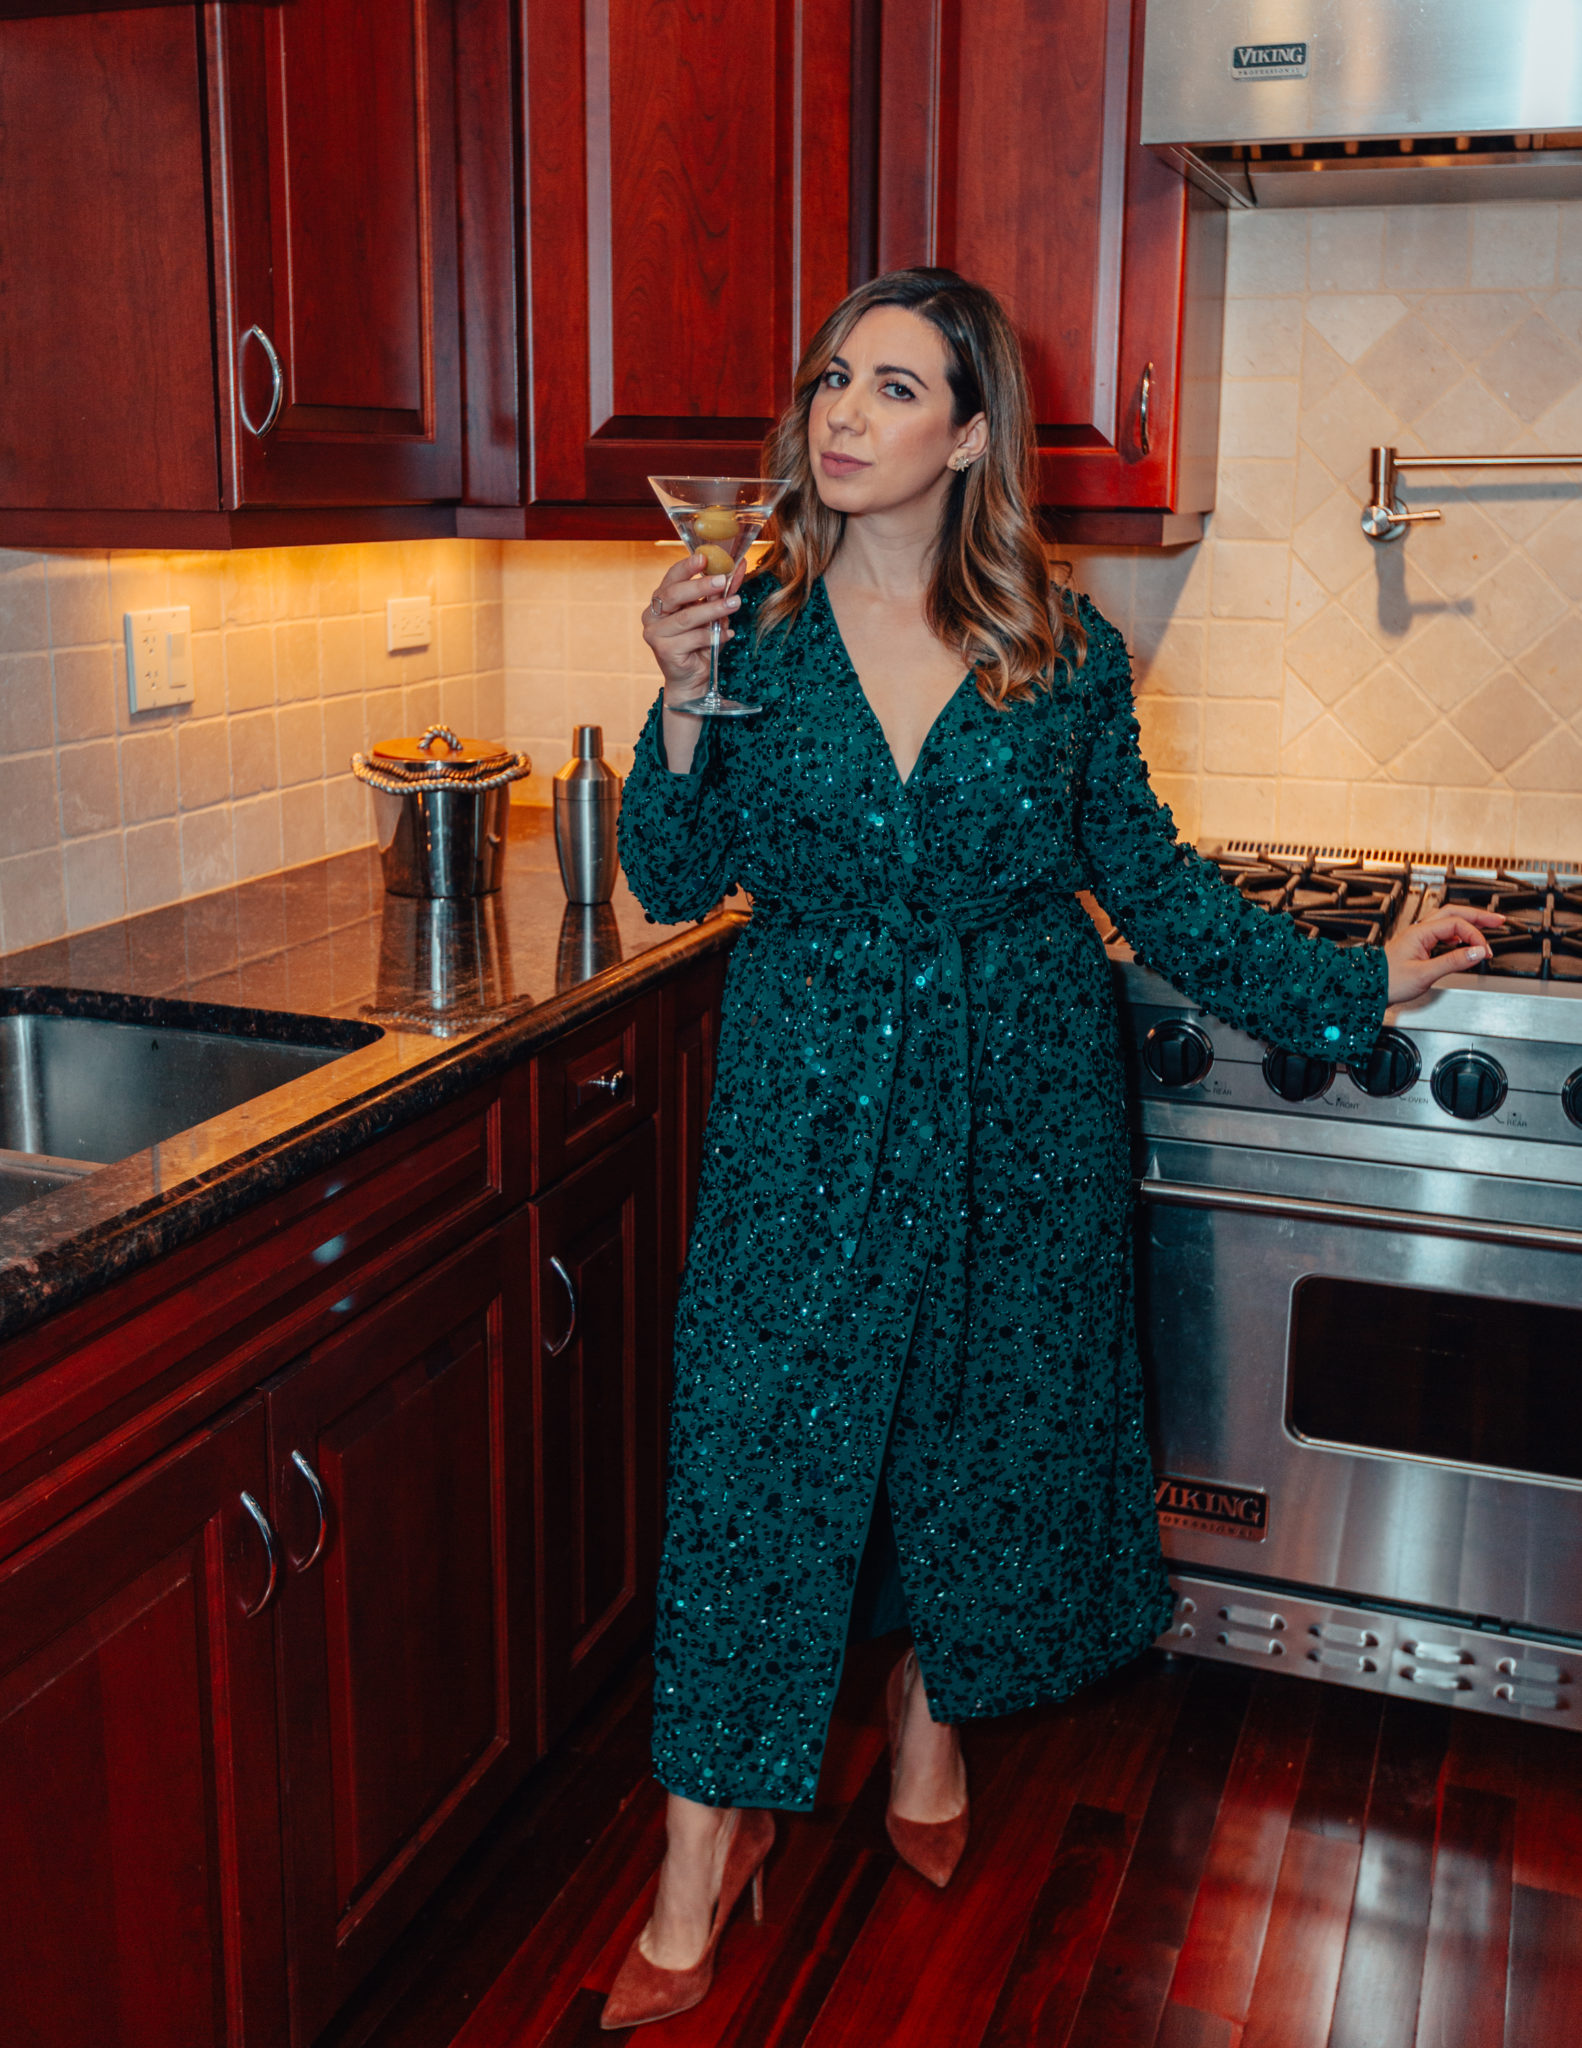 Gifts For Beverage Lovers by popular Chicago life and style blog, Glass of Glam: image of a woman wearing a green sequin dress and holding a martini glass in her kitchen.